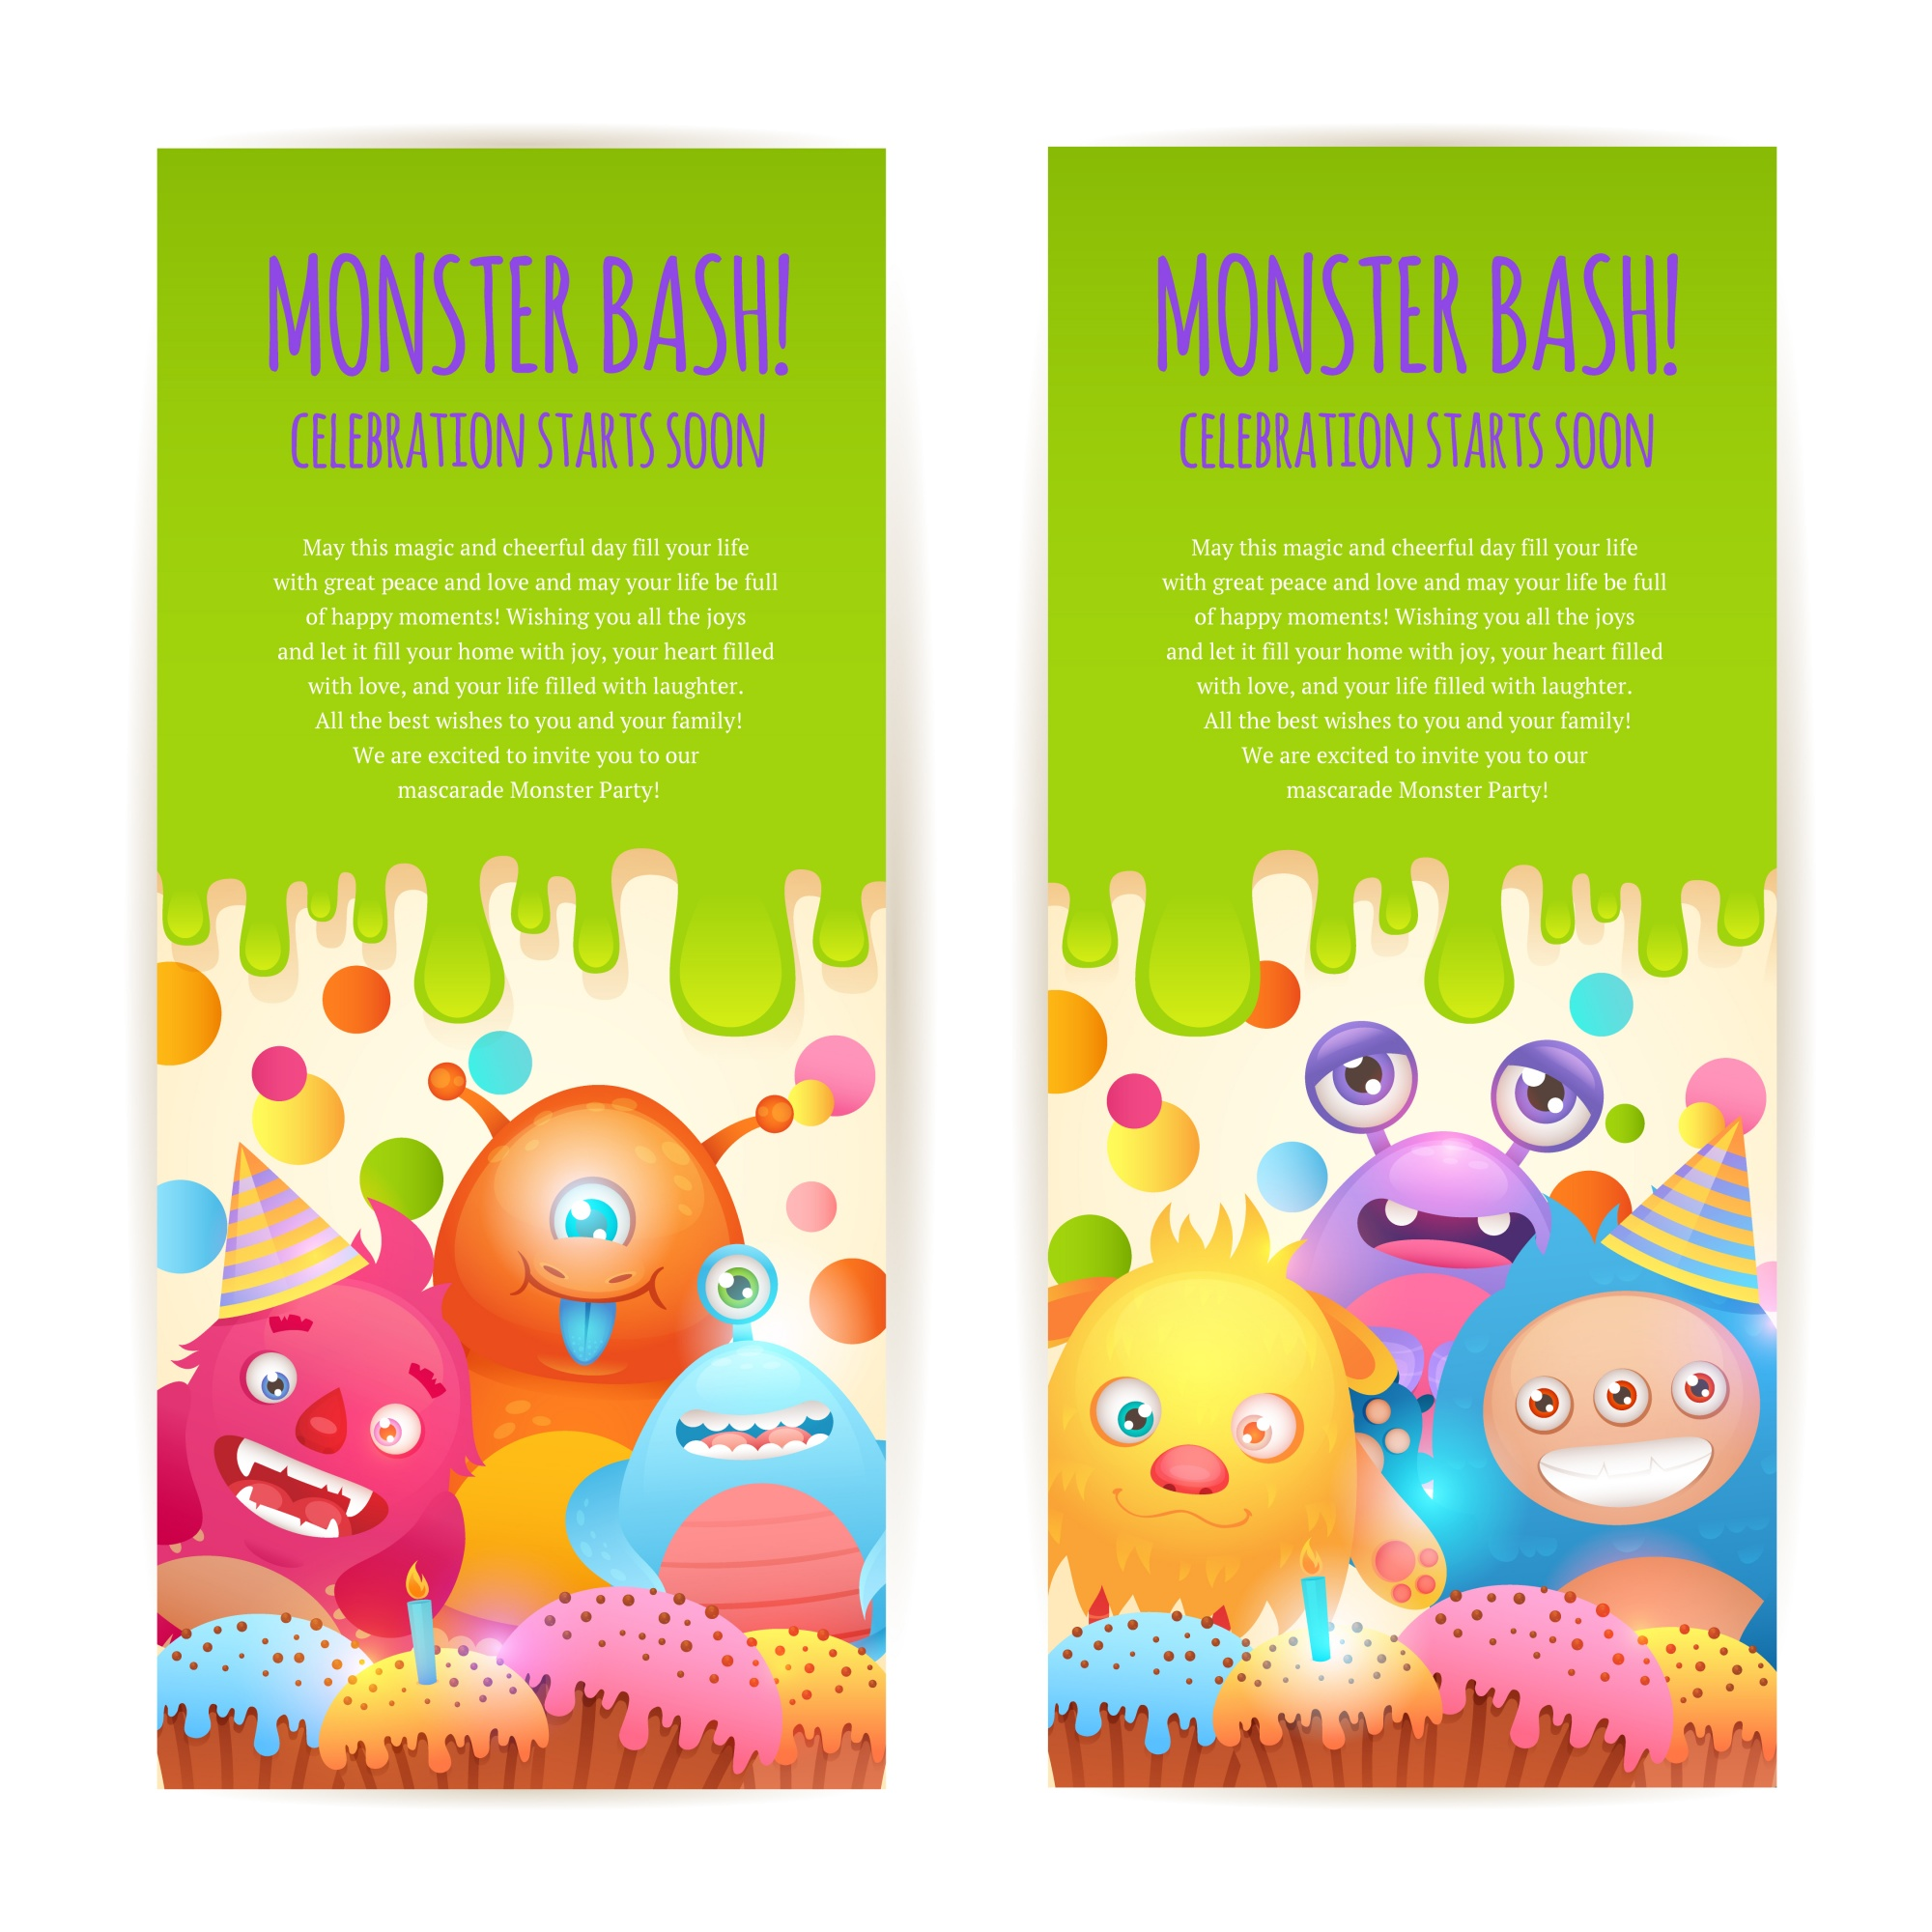 Monsters verticale banners